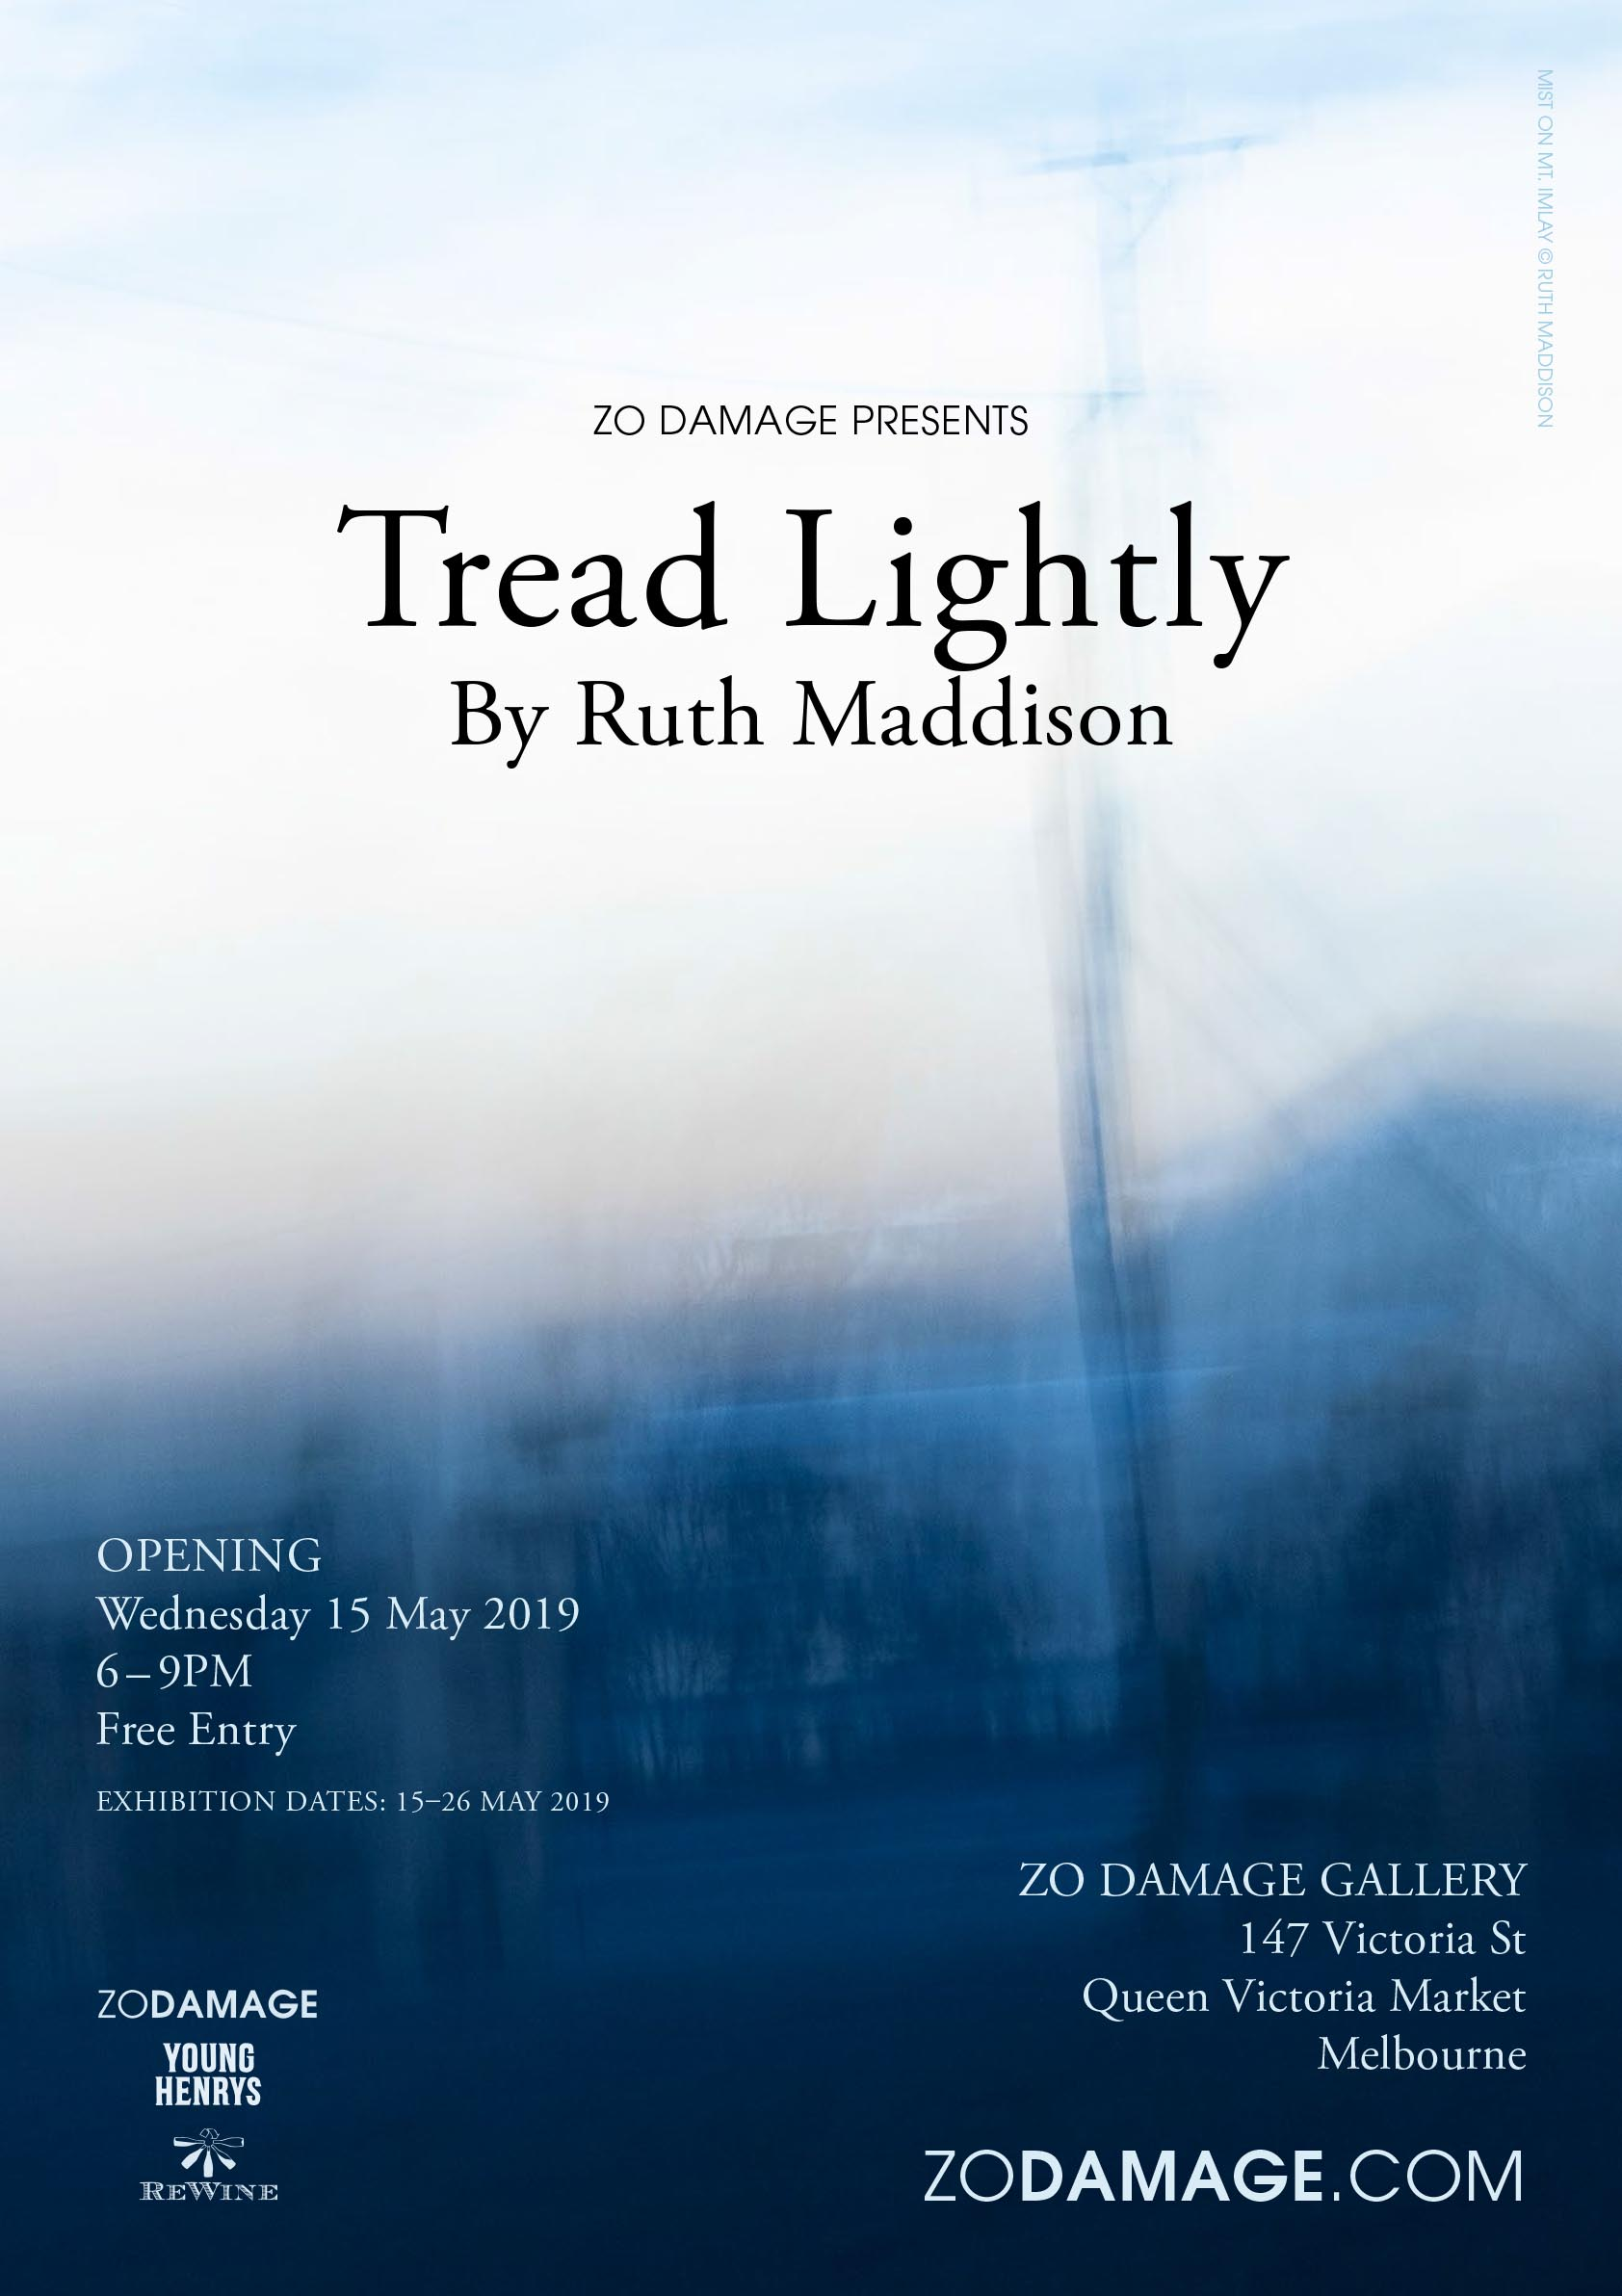 Tread Lighty by Ruth Maddison II.jpg